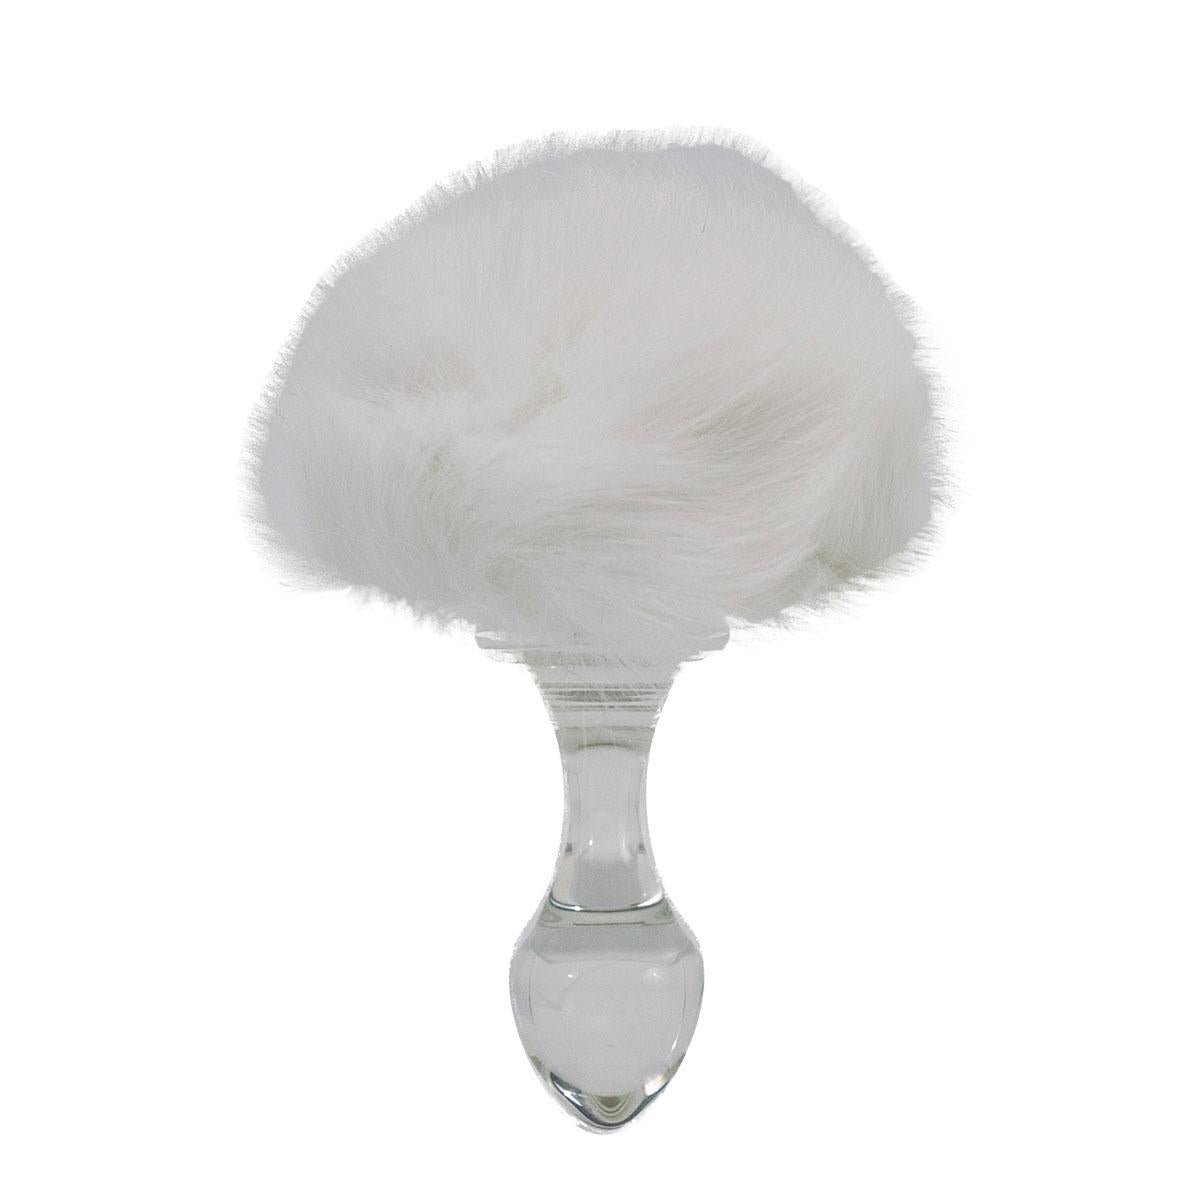 Crystal Delights Magnetic Bunny Tail  - White